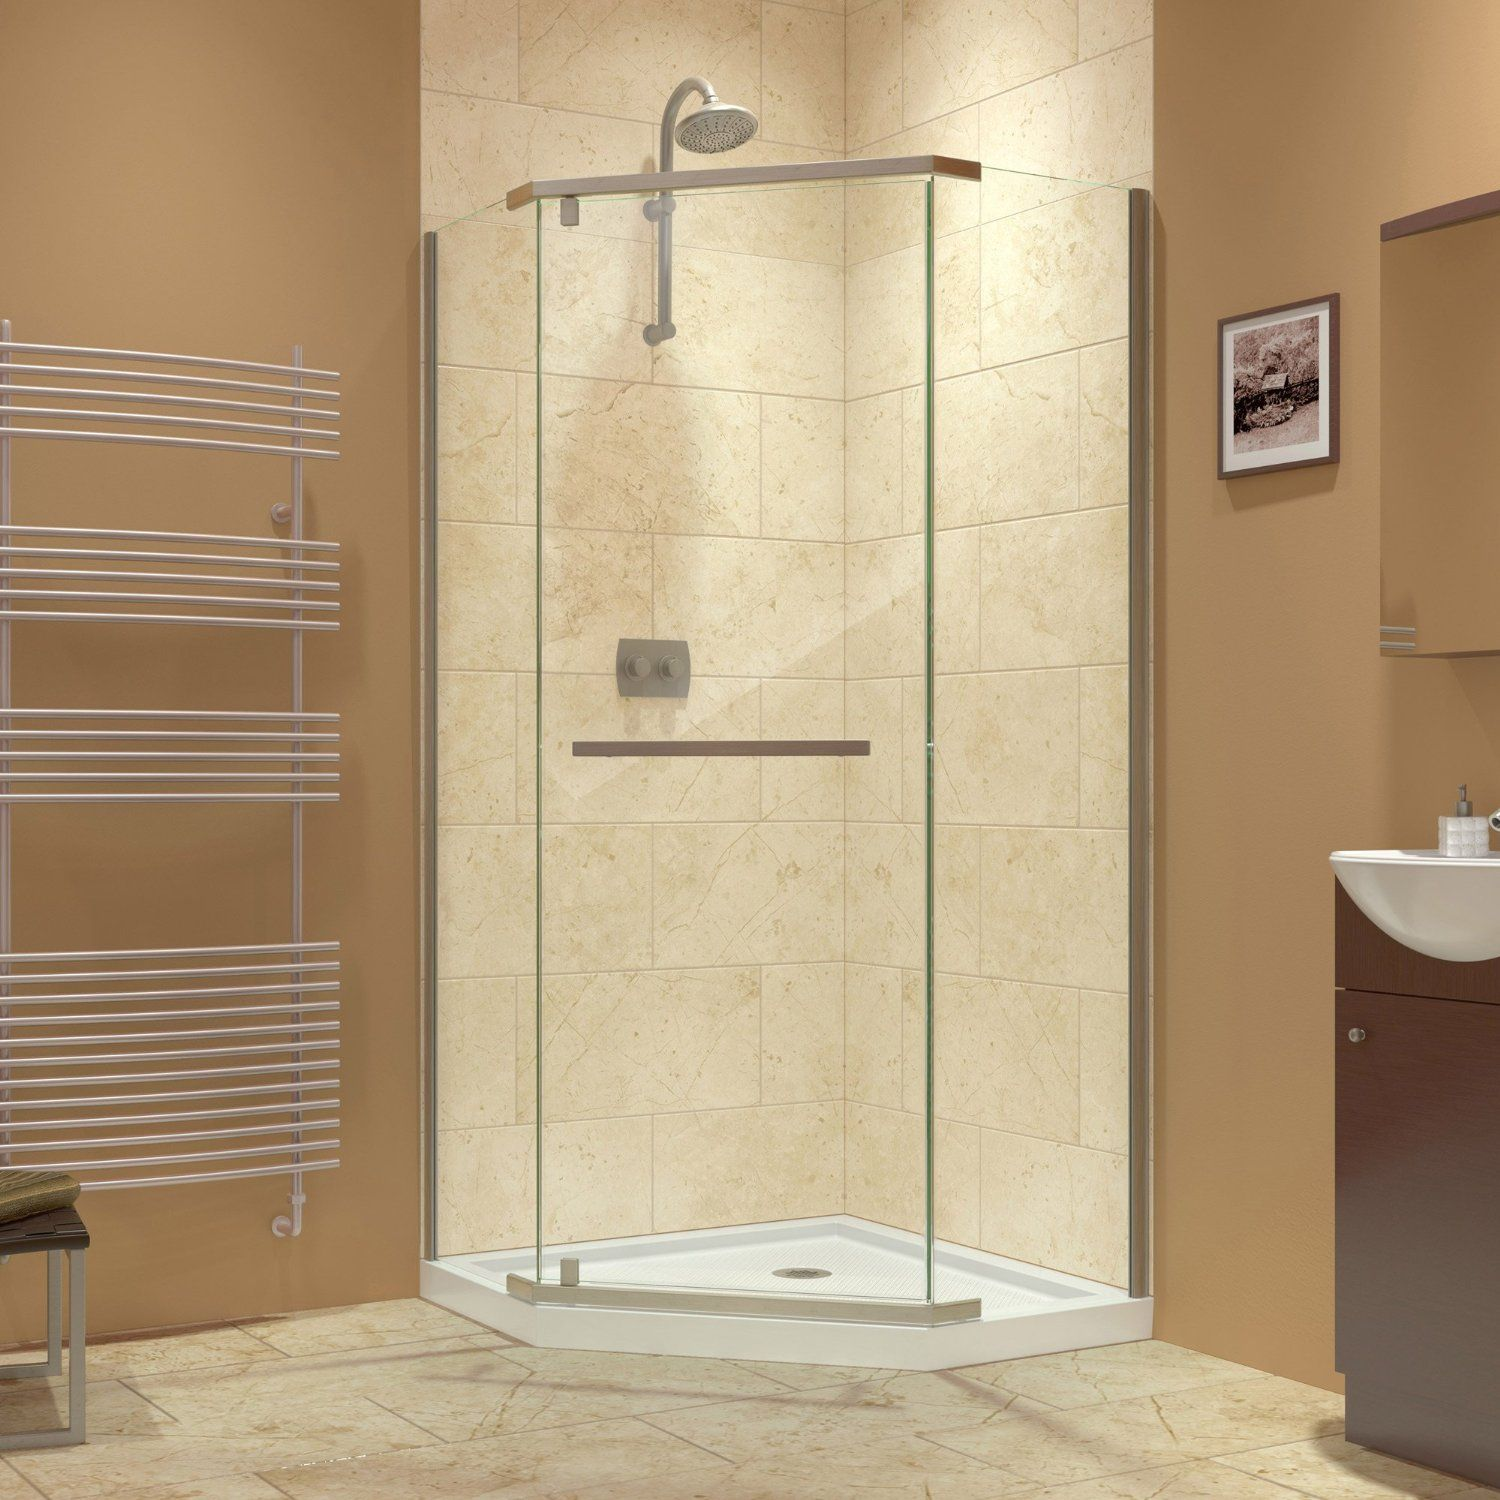 The Prism Neo Angle Shower Enclosure From Dreamline Uses A Desirable Corner Installation To Open